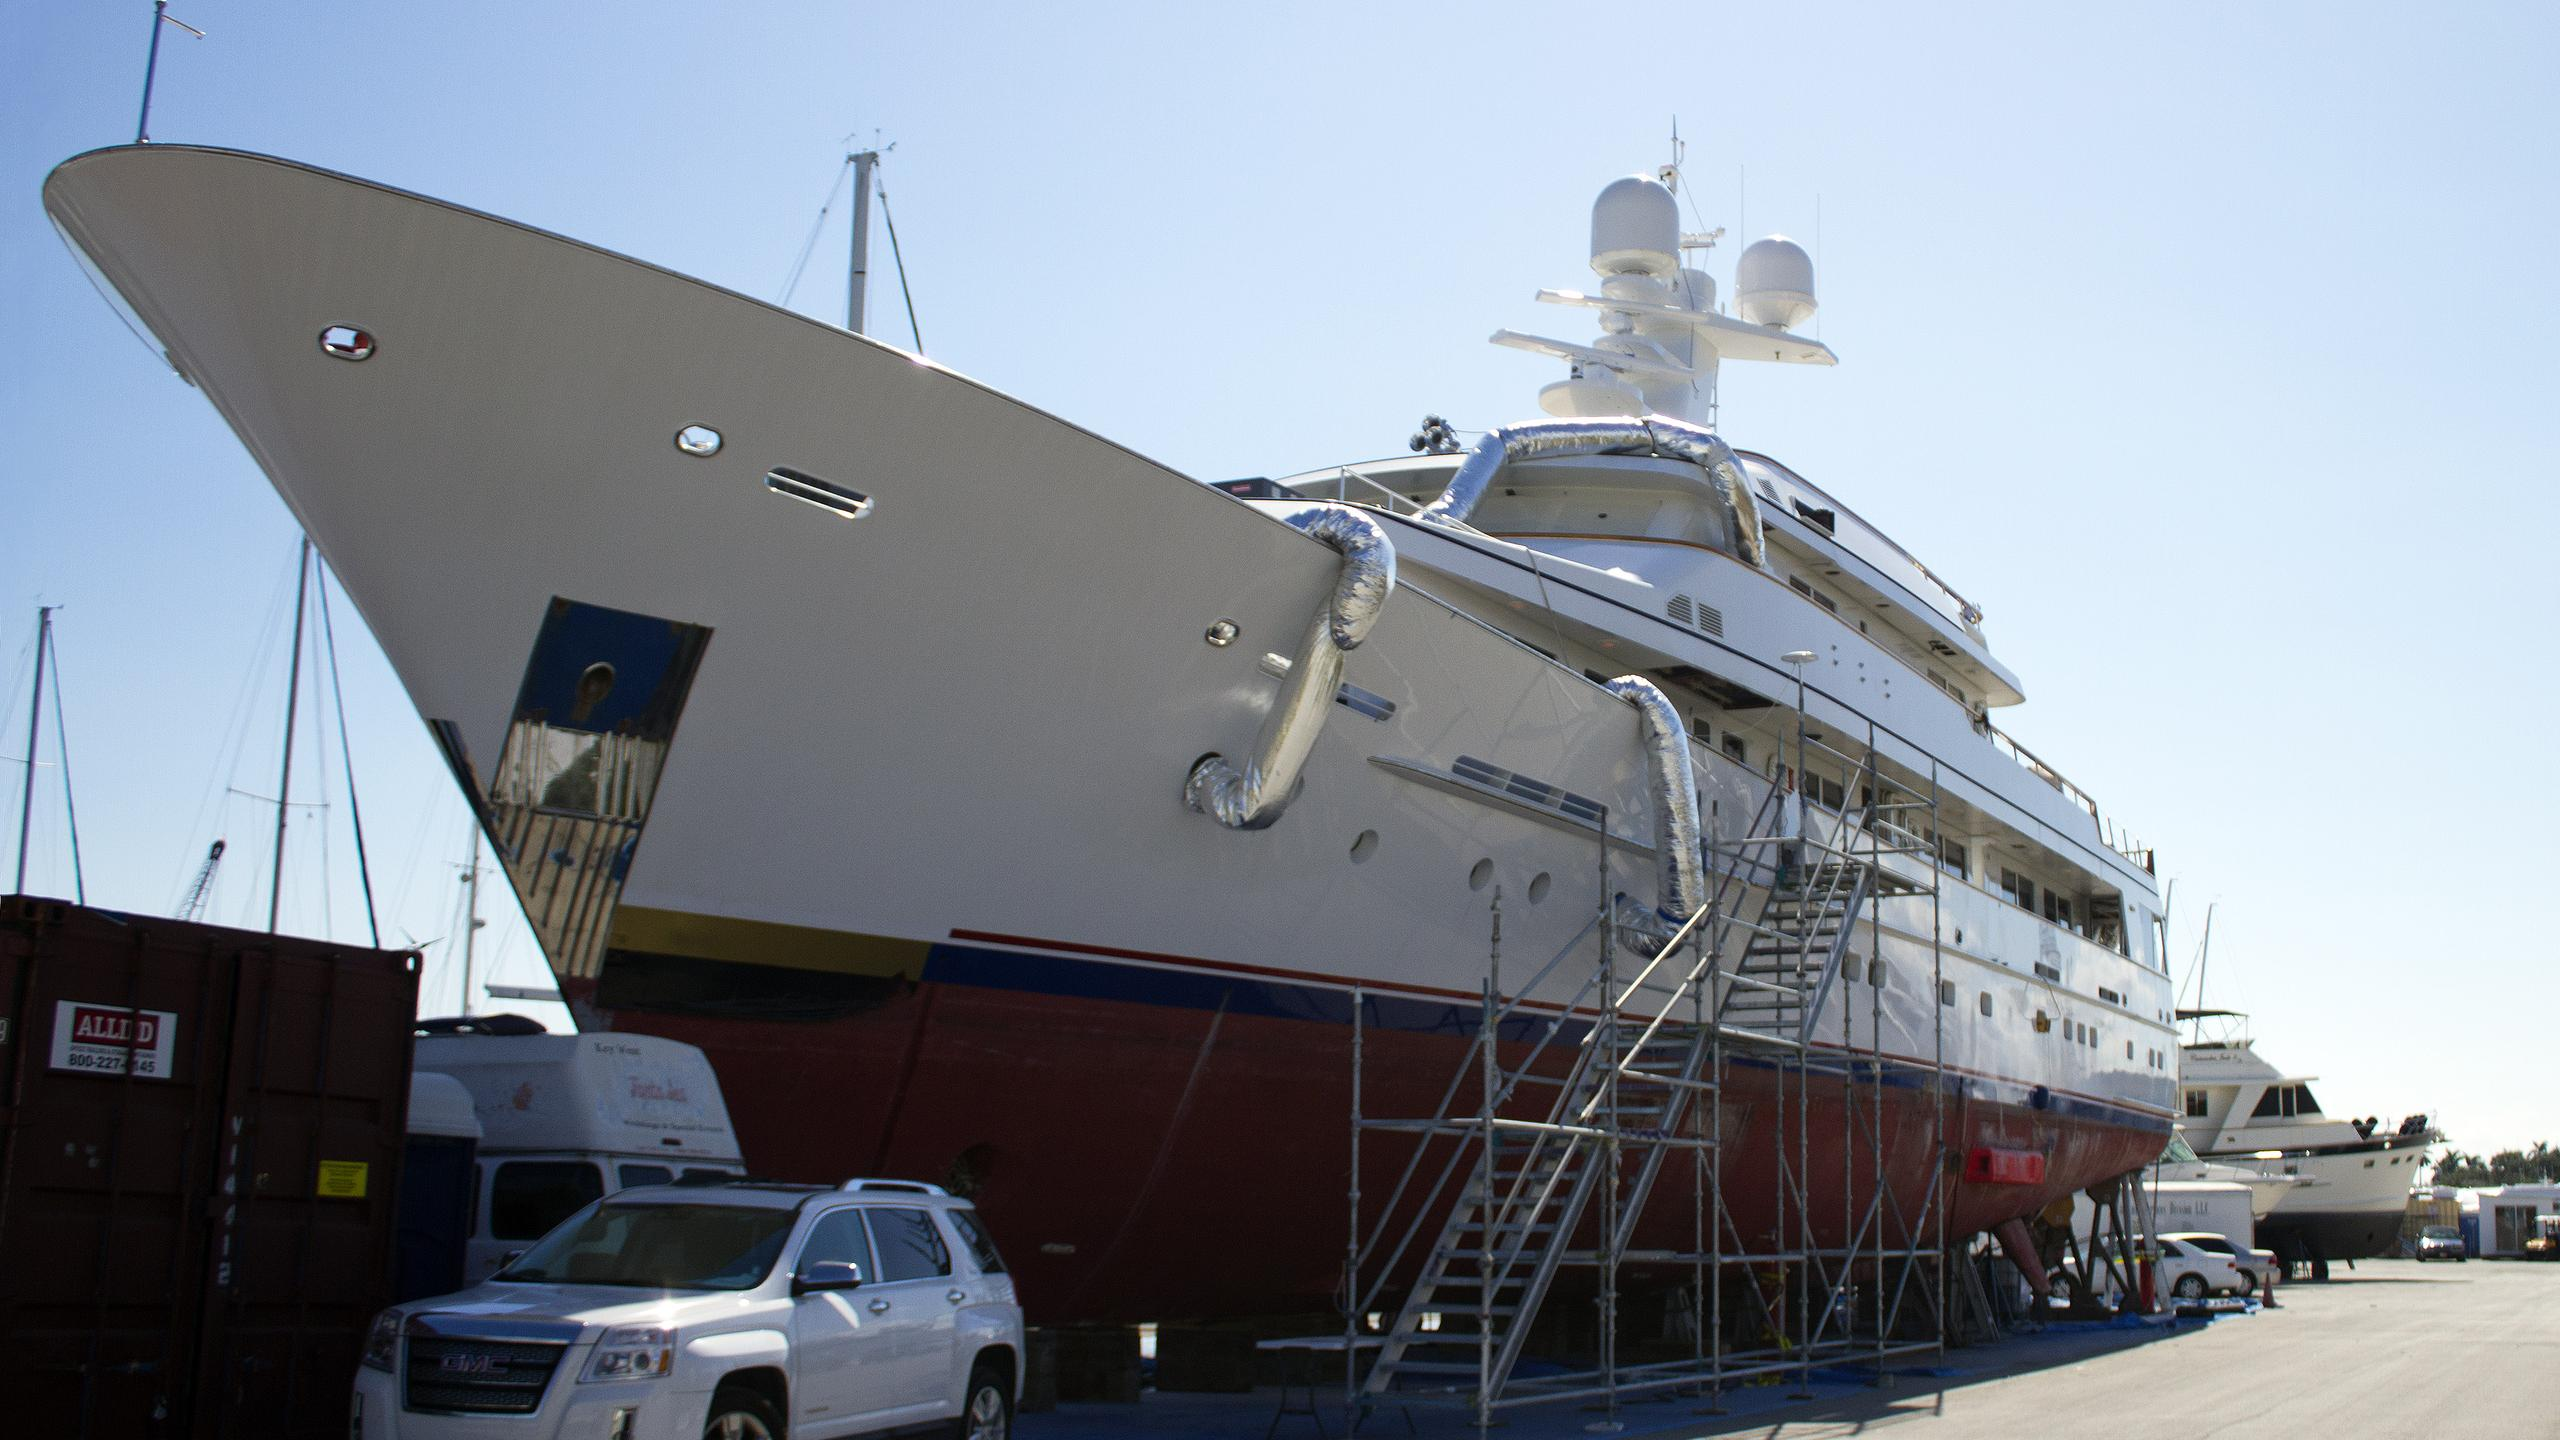 endless-summer-motor-yacht-feadship-1991-46m-profile-bow